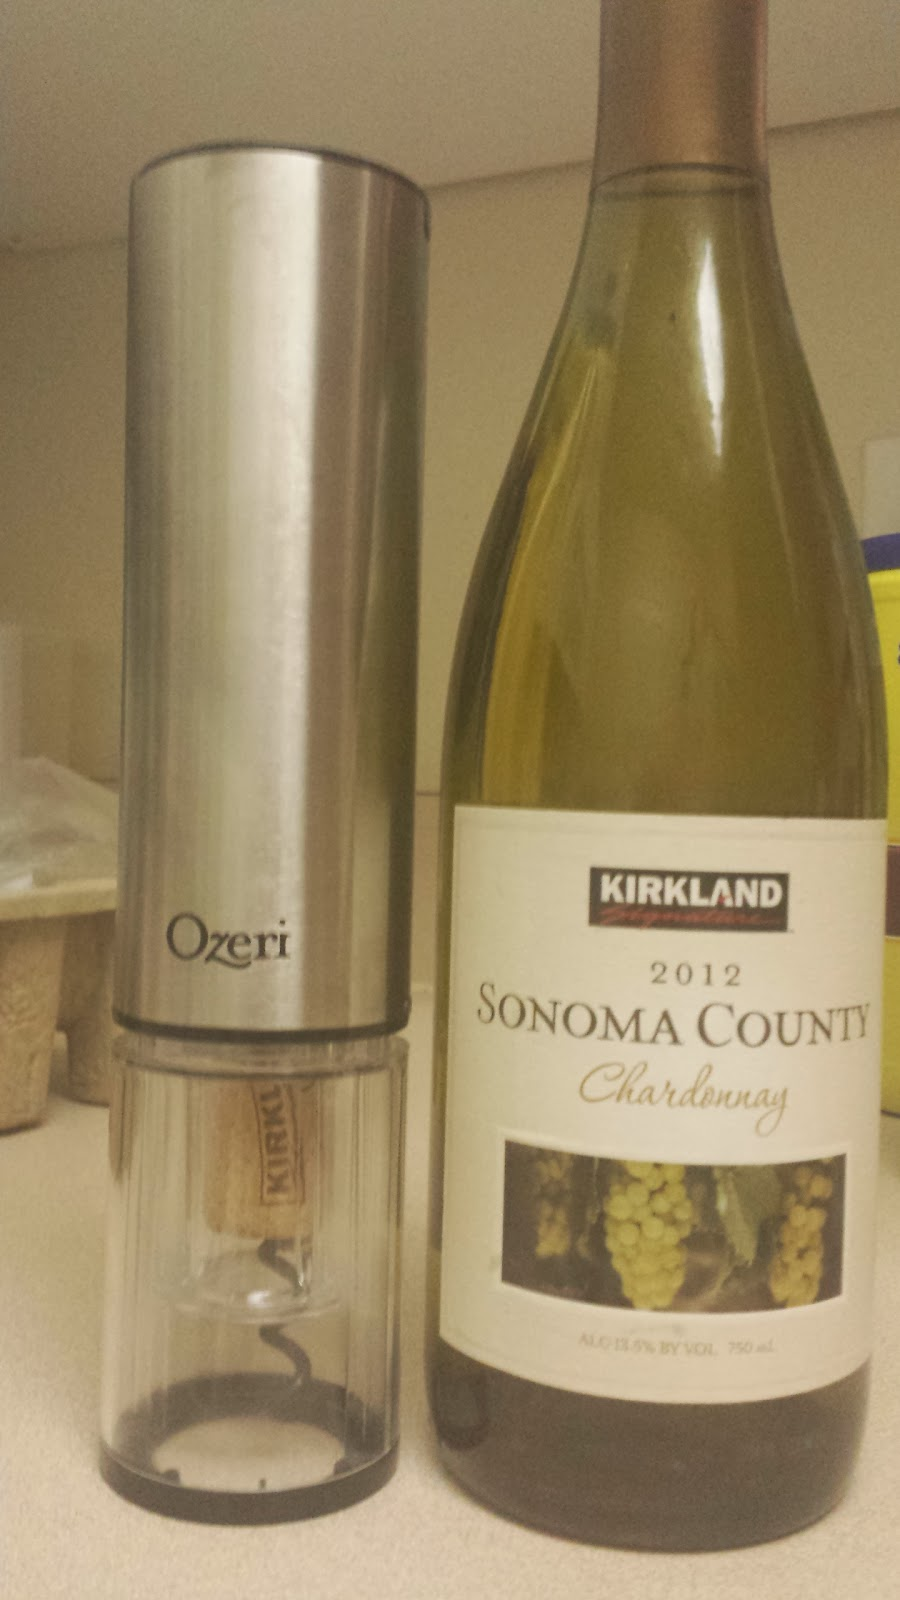 Ozeri Extravo Electric Wine Opener in Stainless Steel Review